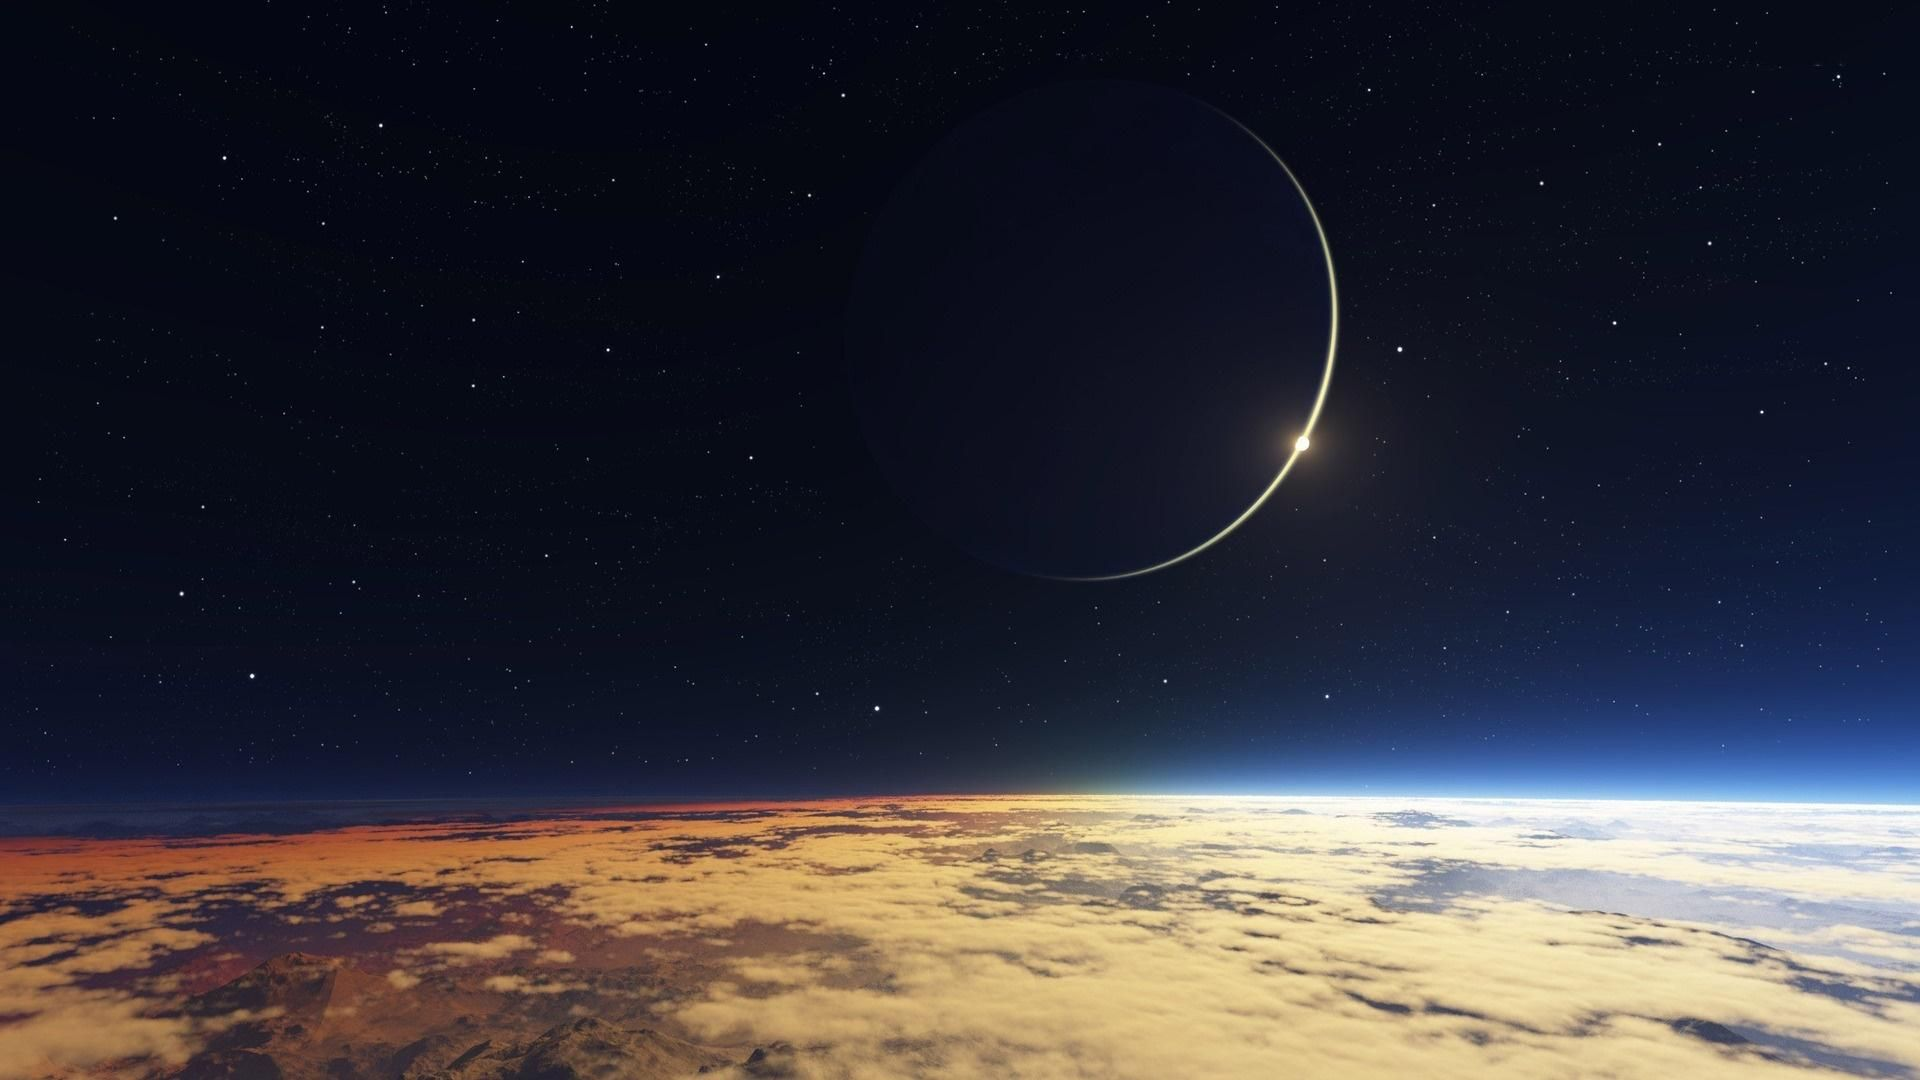 Beautiful Moon Wallpaper 19201080 Iphone Wallpaper Earth Wallpaper Space Earth Pictures